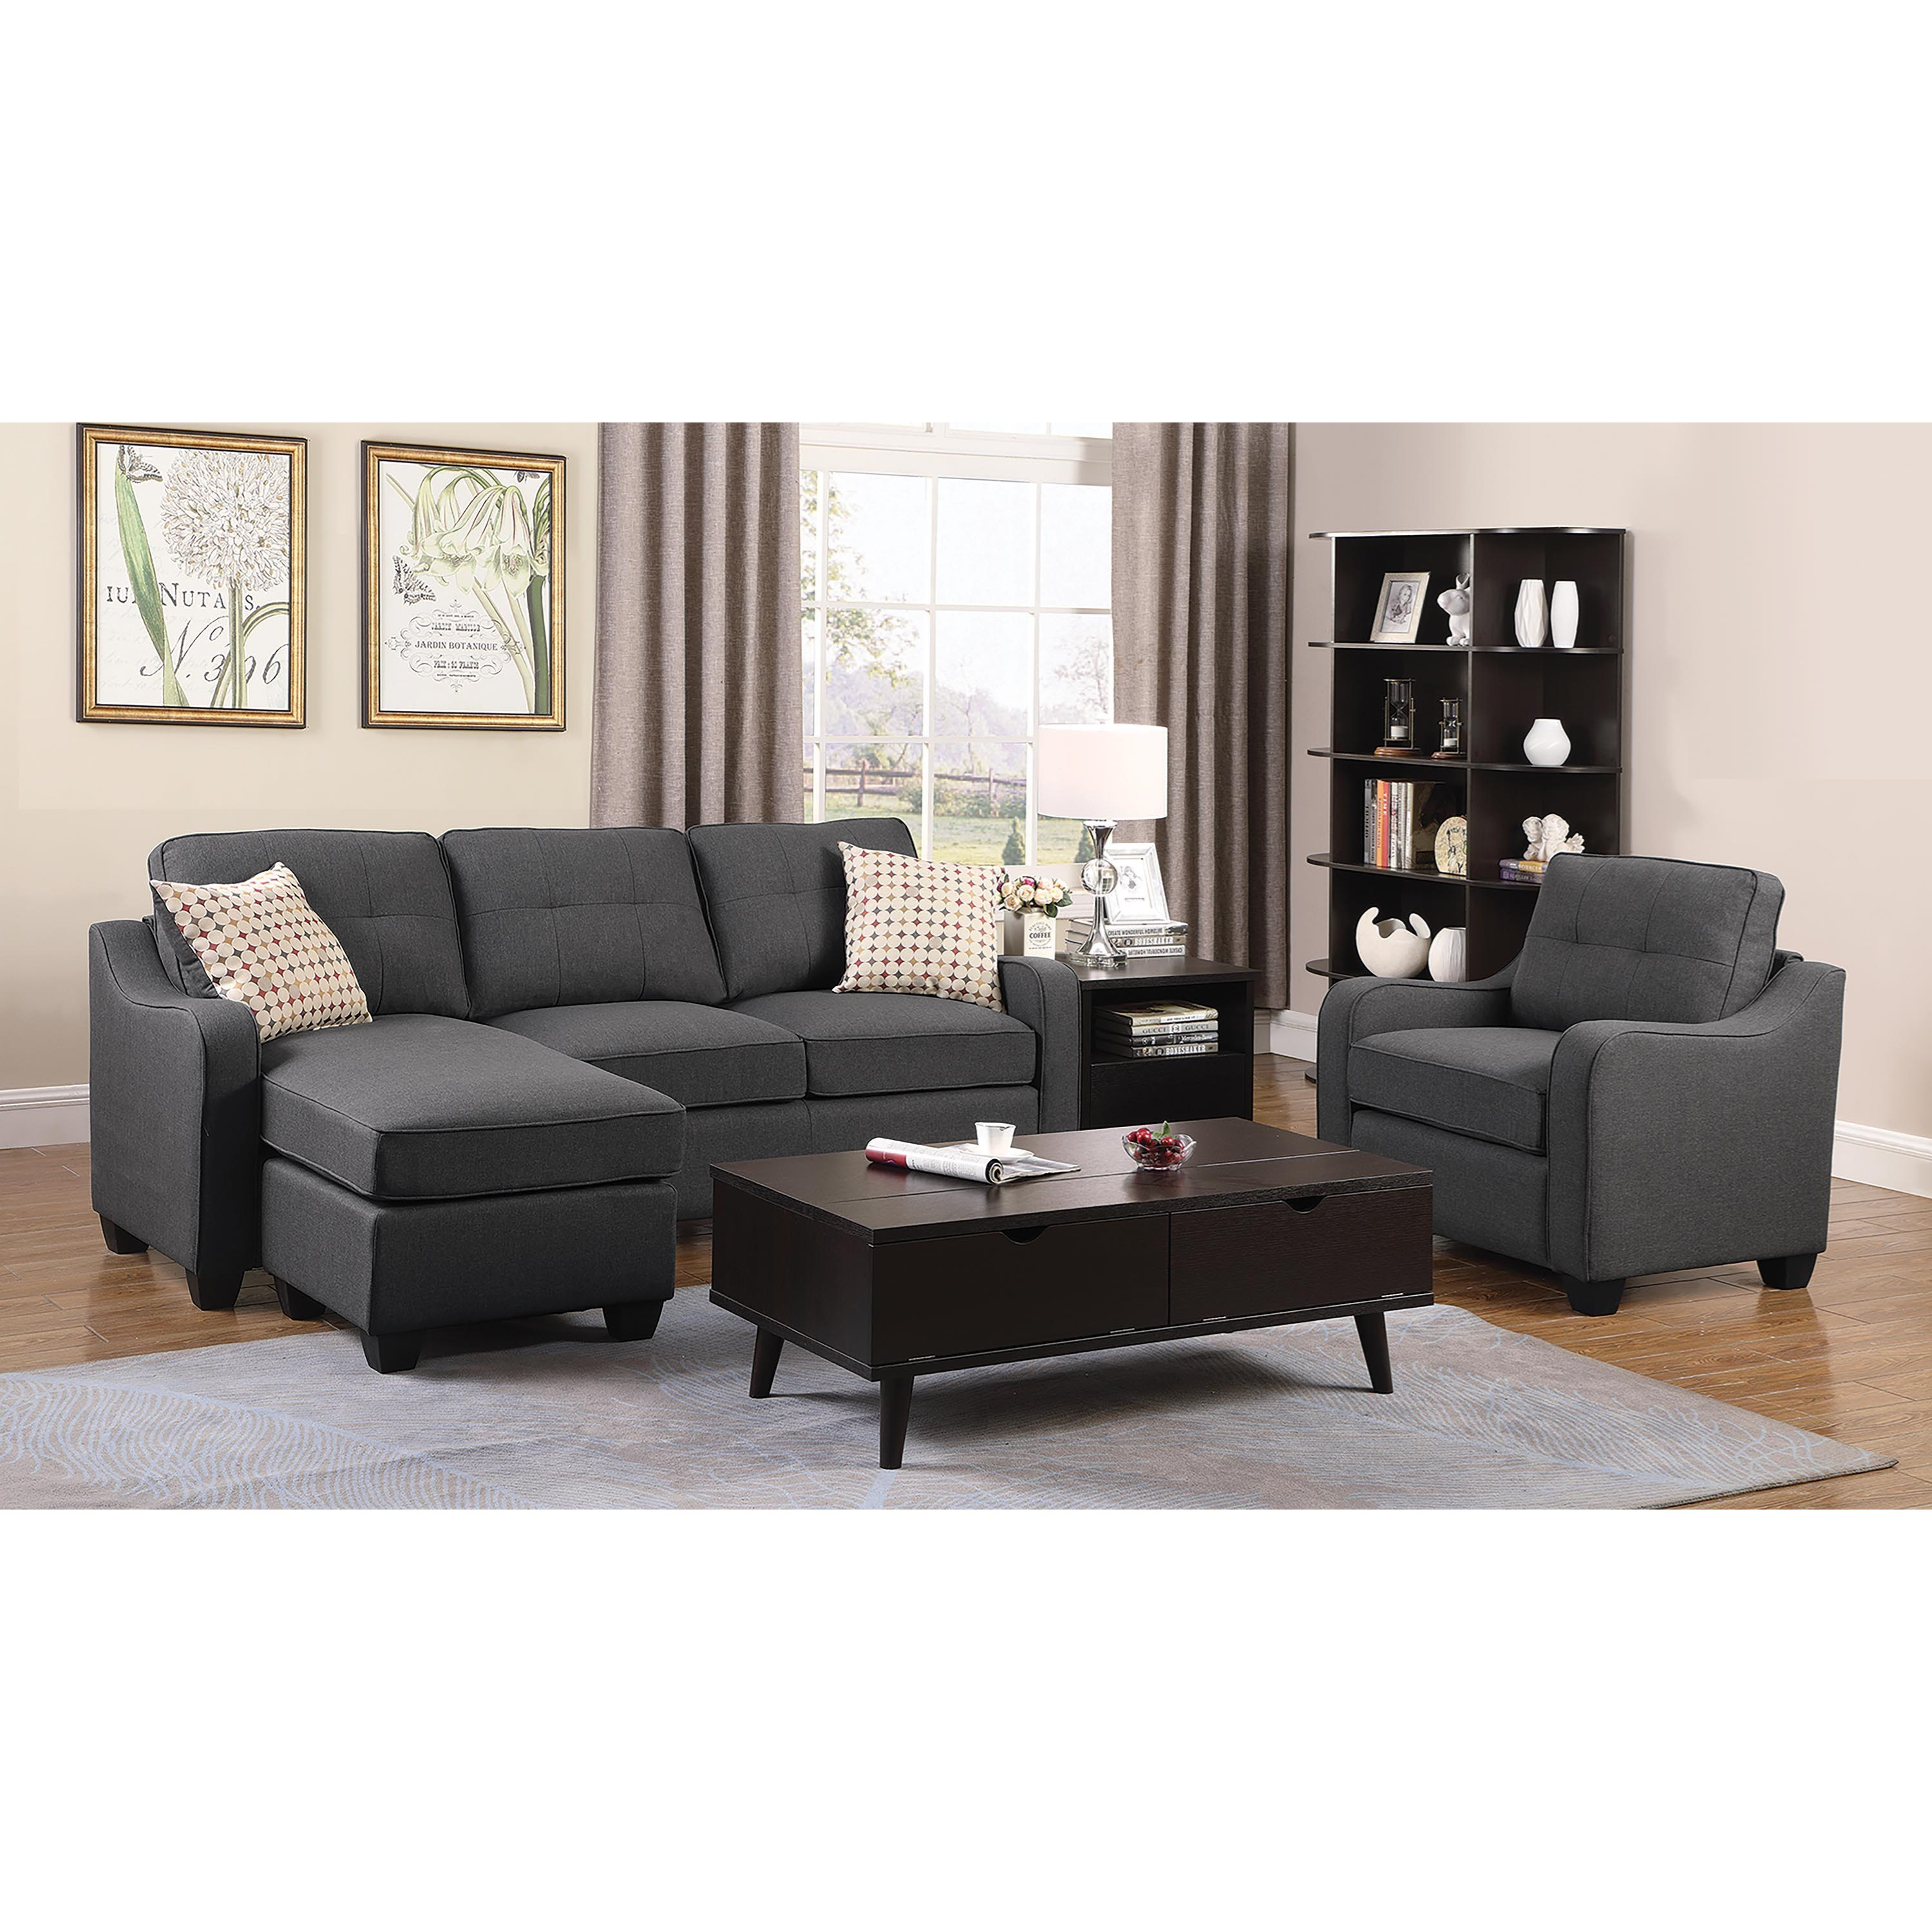 508320 Living Room Group by Coaster at Beds N Stuff